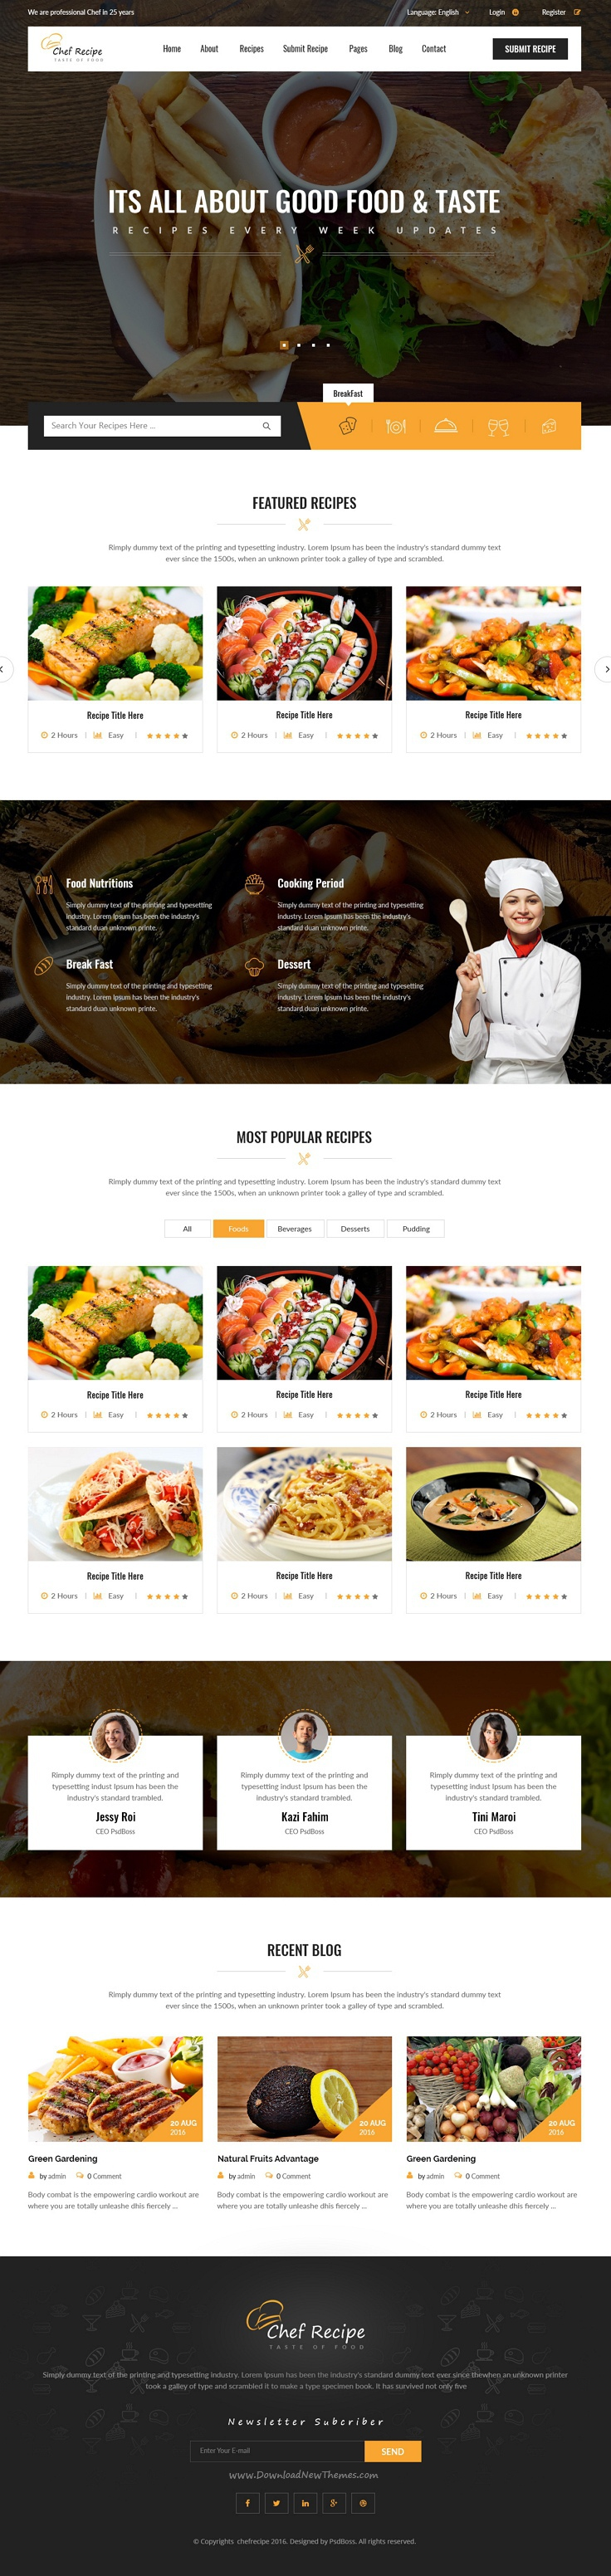 Chef recipe food and recipe psd template chef recipes and psd chef recipe food and recipe psd template chef recipe is designed for food recipes forumfinder Images